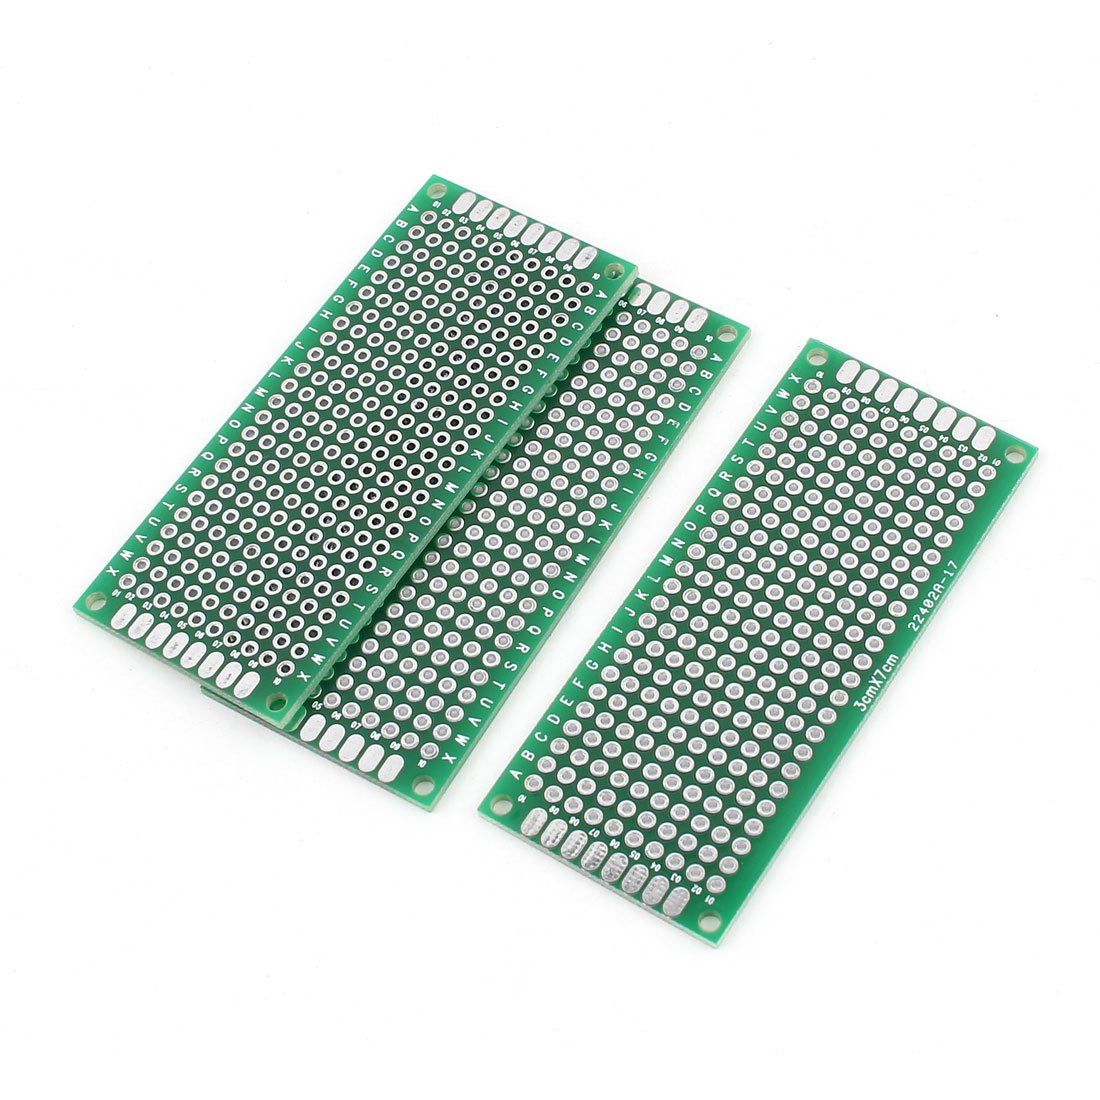 uxcell 300x200mm Single-Sided Copper Clad Laminate PCB Circuit Board FR4 1.5mm Thickness DIY Prototyping PCB Board